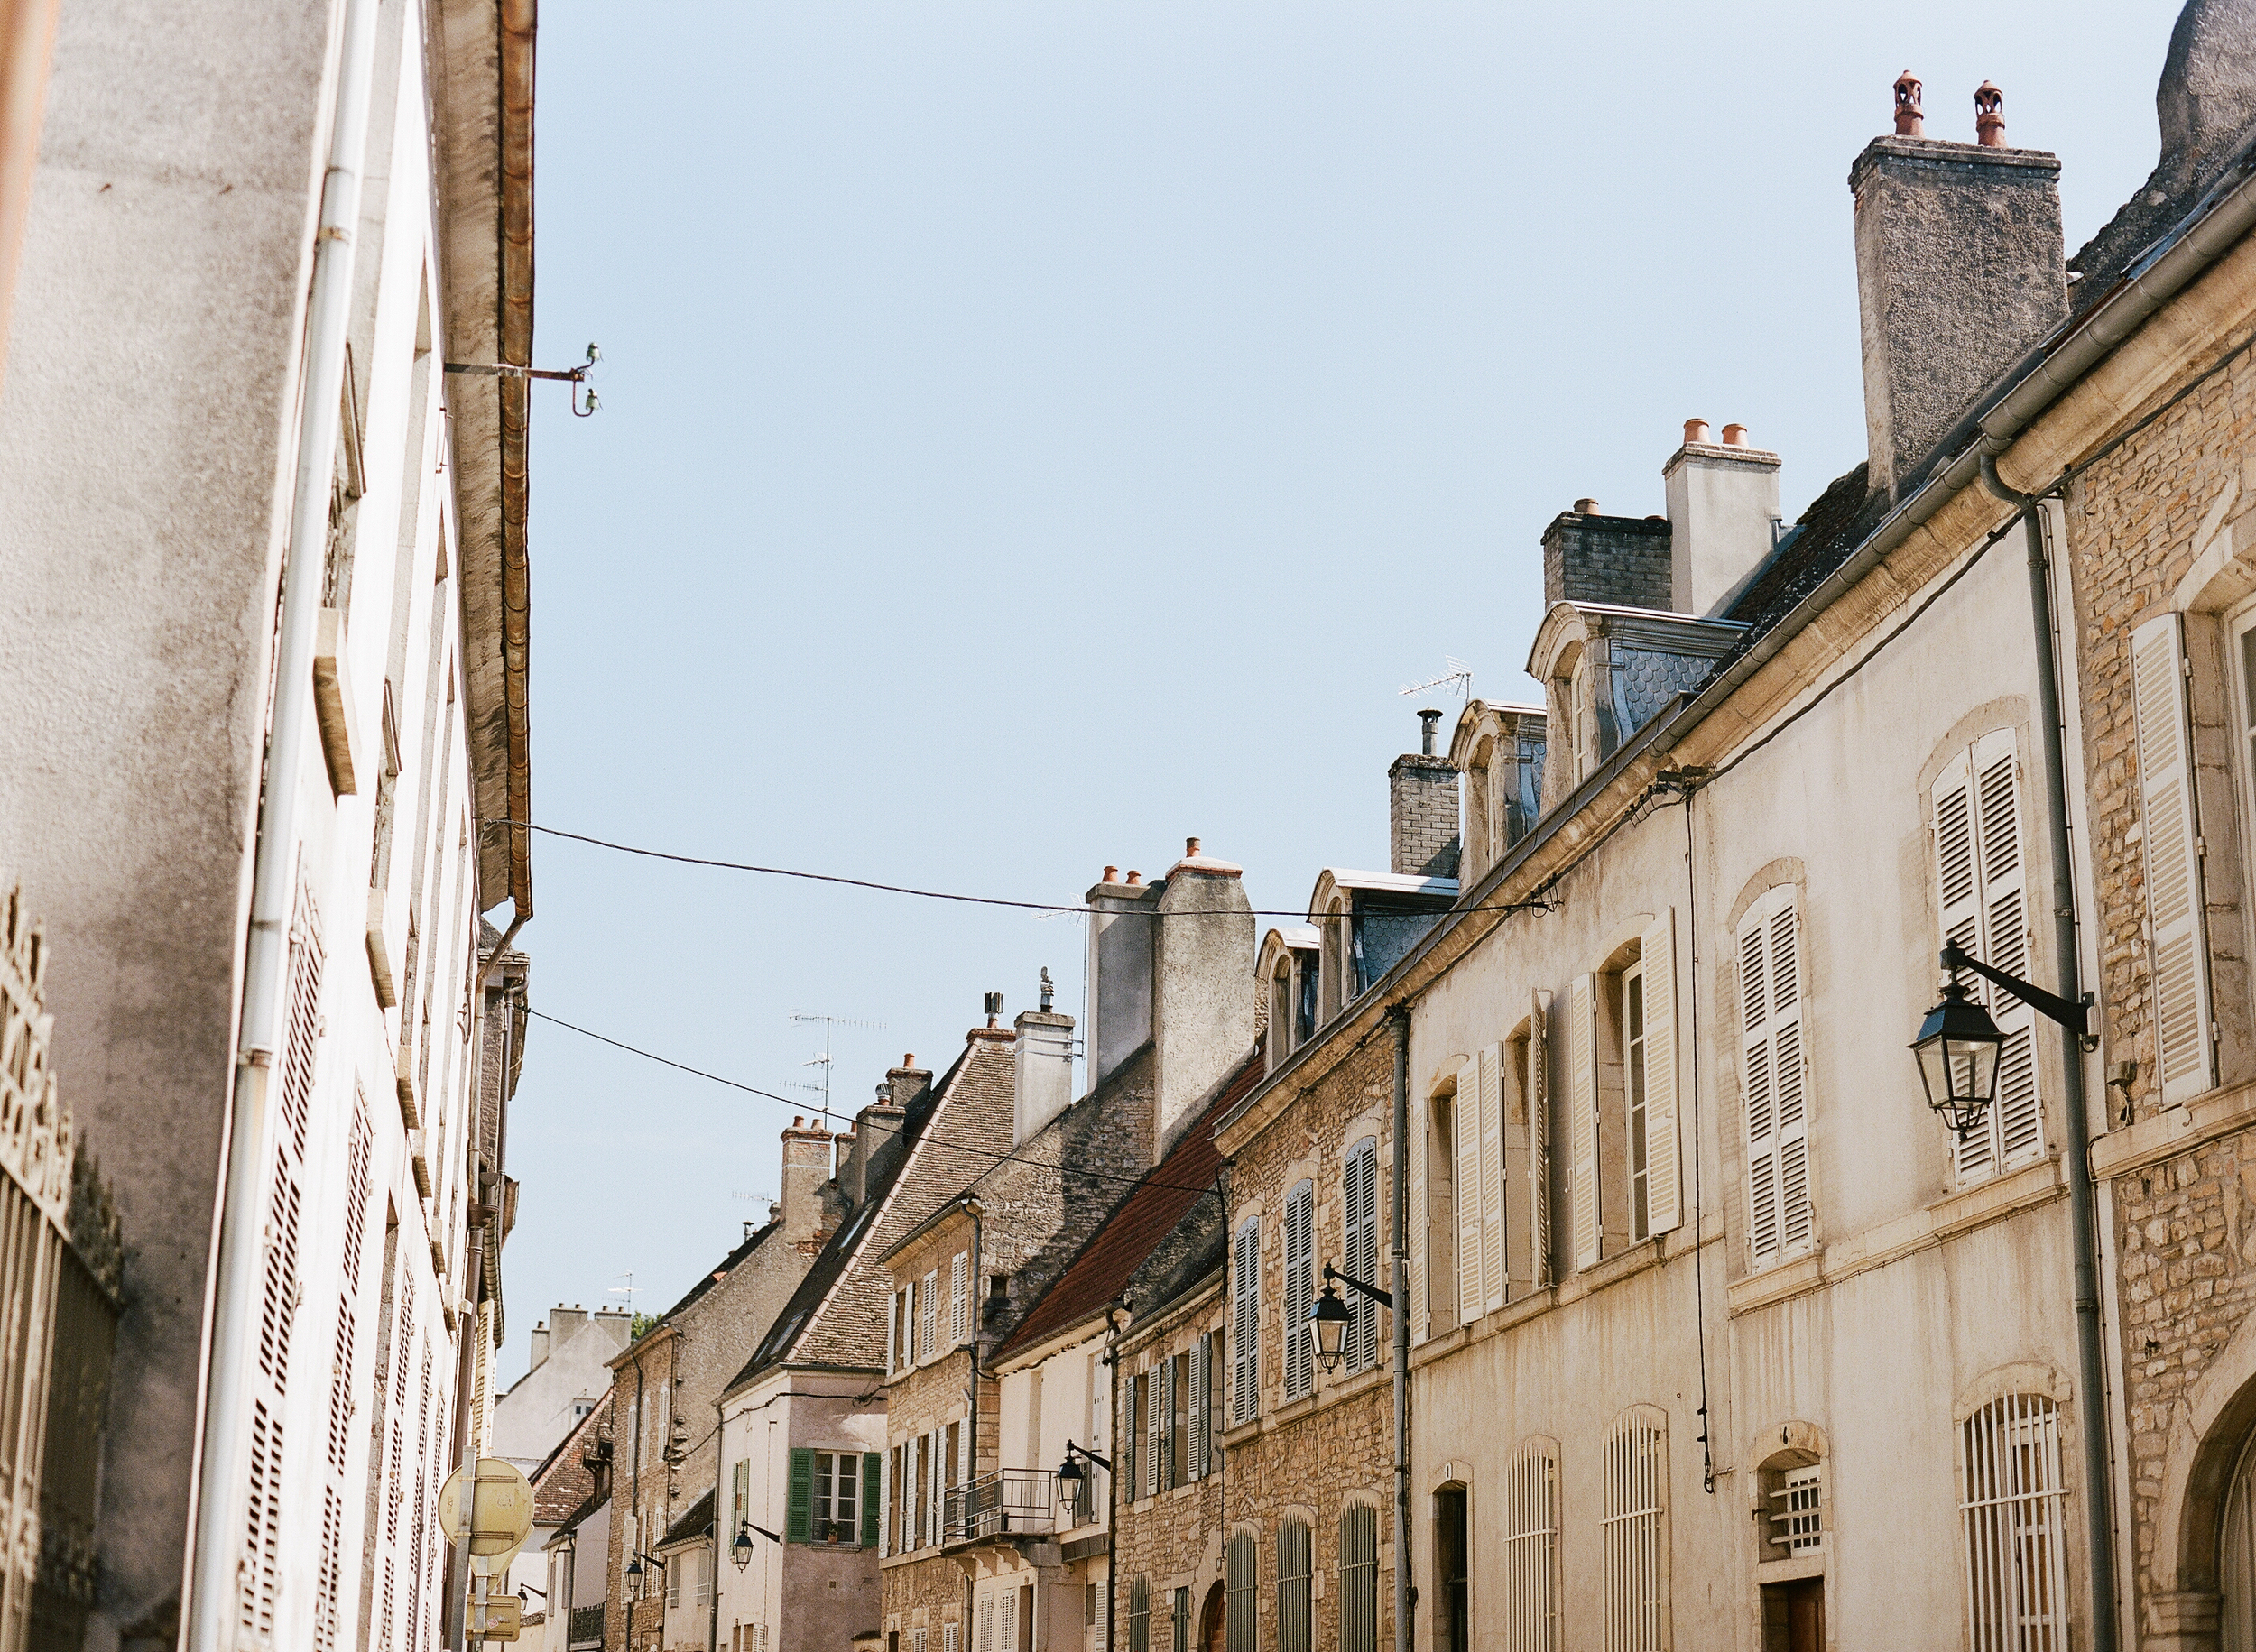 Rooftops in an alley in Lyon; photography by Sylvie Gil